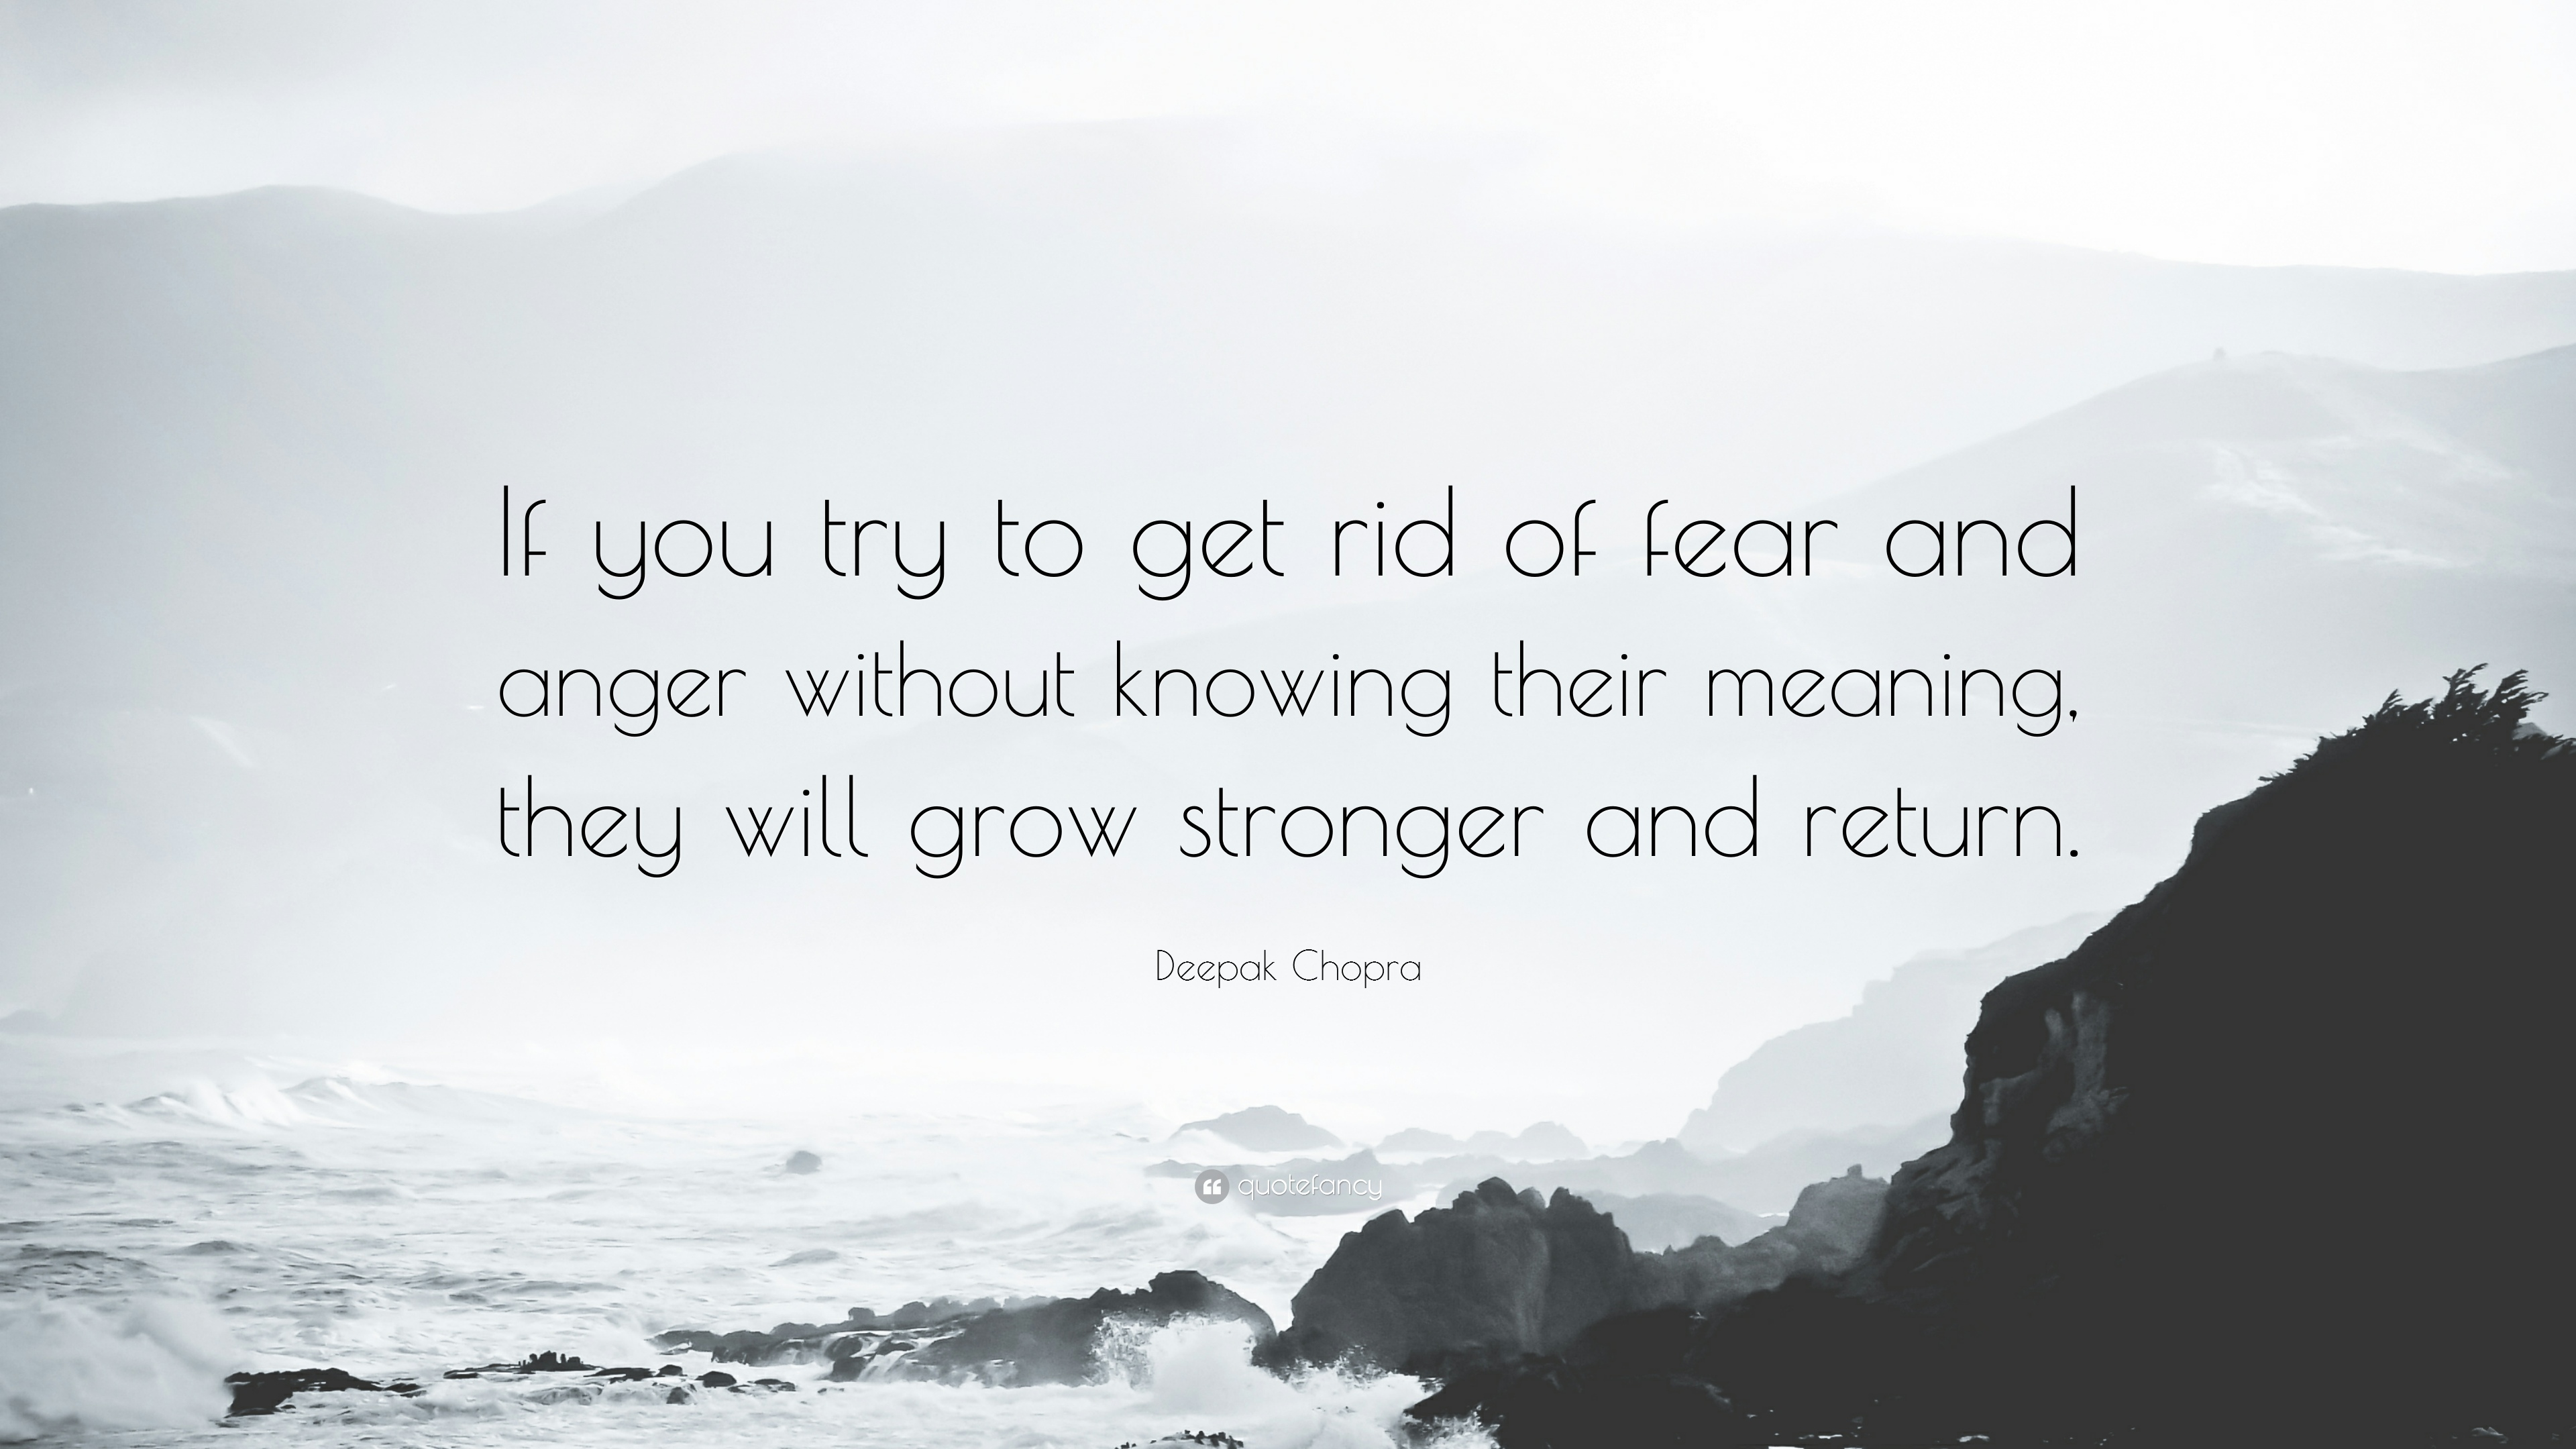 How to get rid of fear 81